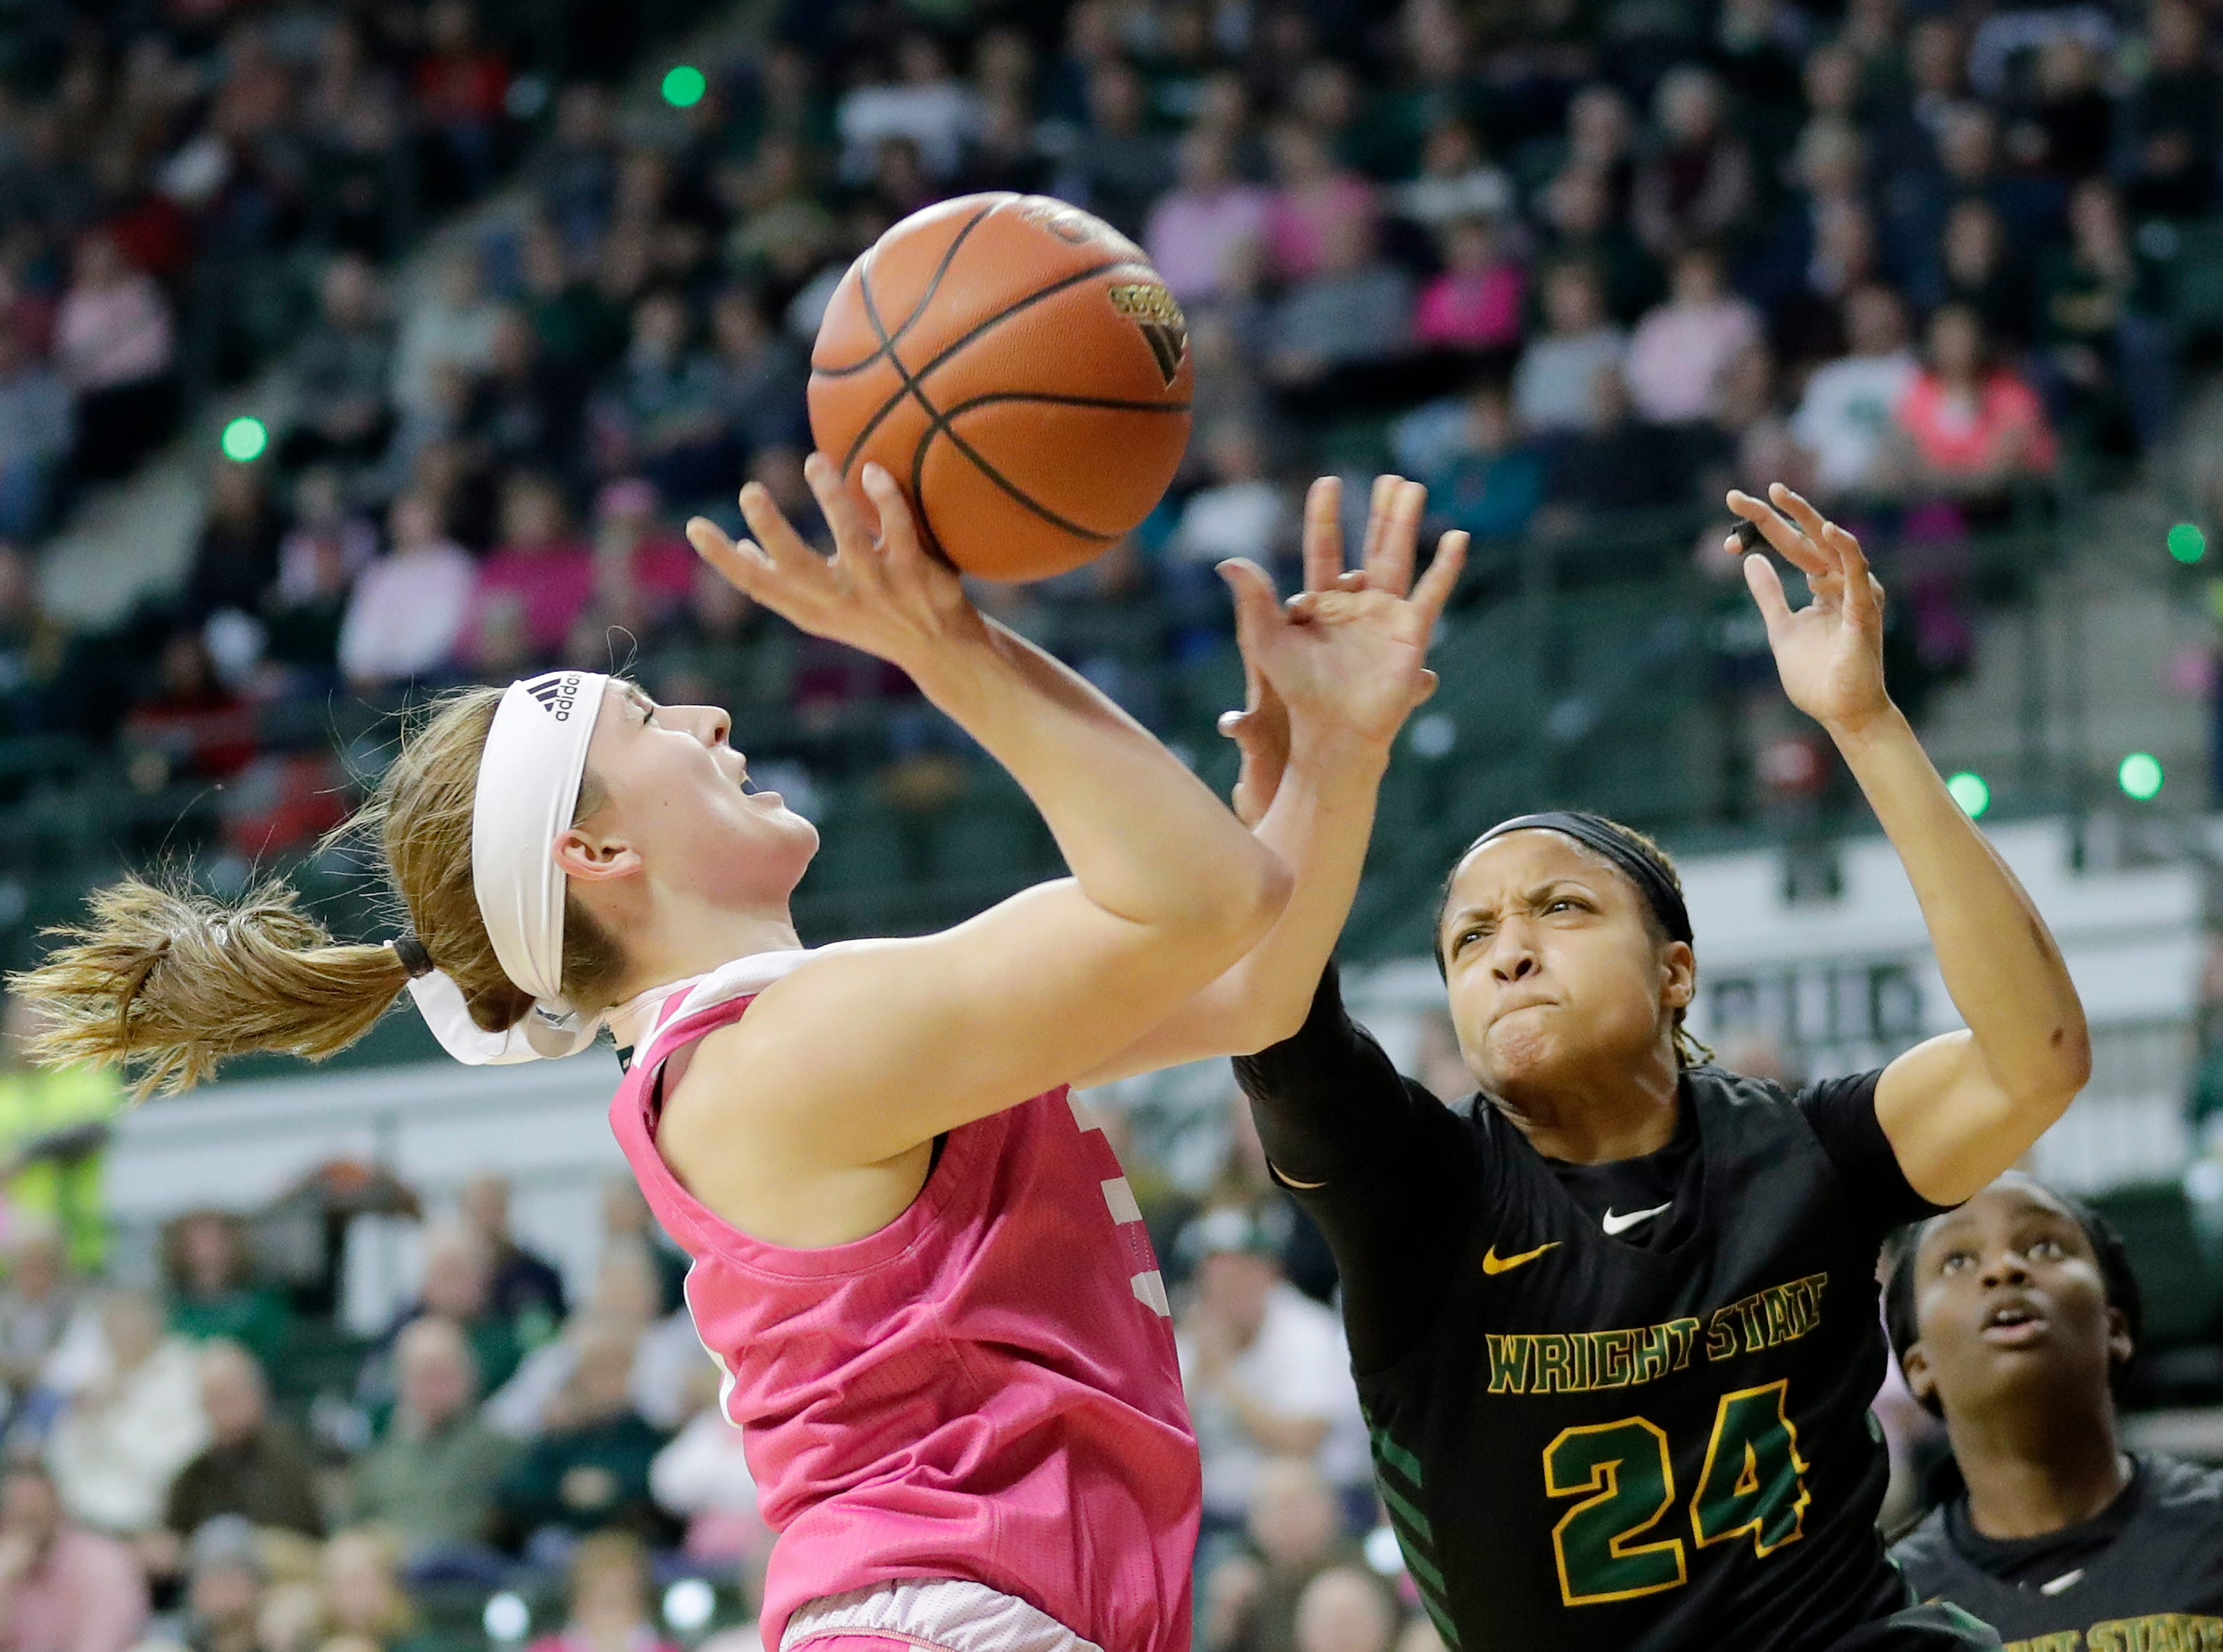 Green Bay Phoenix guard Frankie Wurtz (3) draws a foul on Wright State Raiders guard Michal Miller (24) in a Horizon League women's basketball game at the Kress Center on Saturday, February 9, 2019 in Green Bay, Wis.